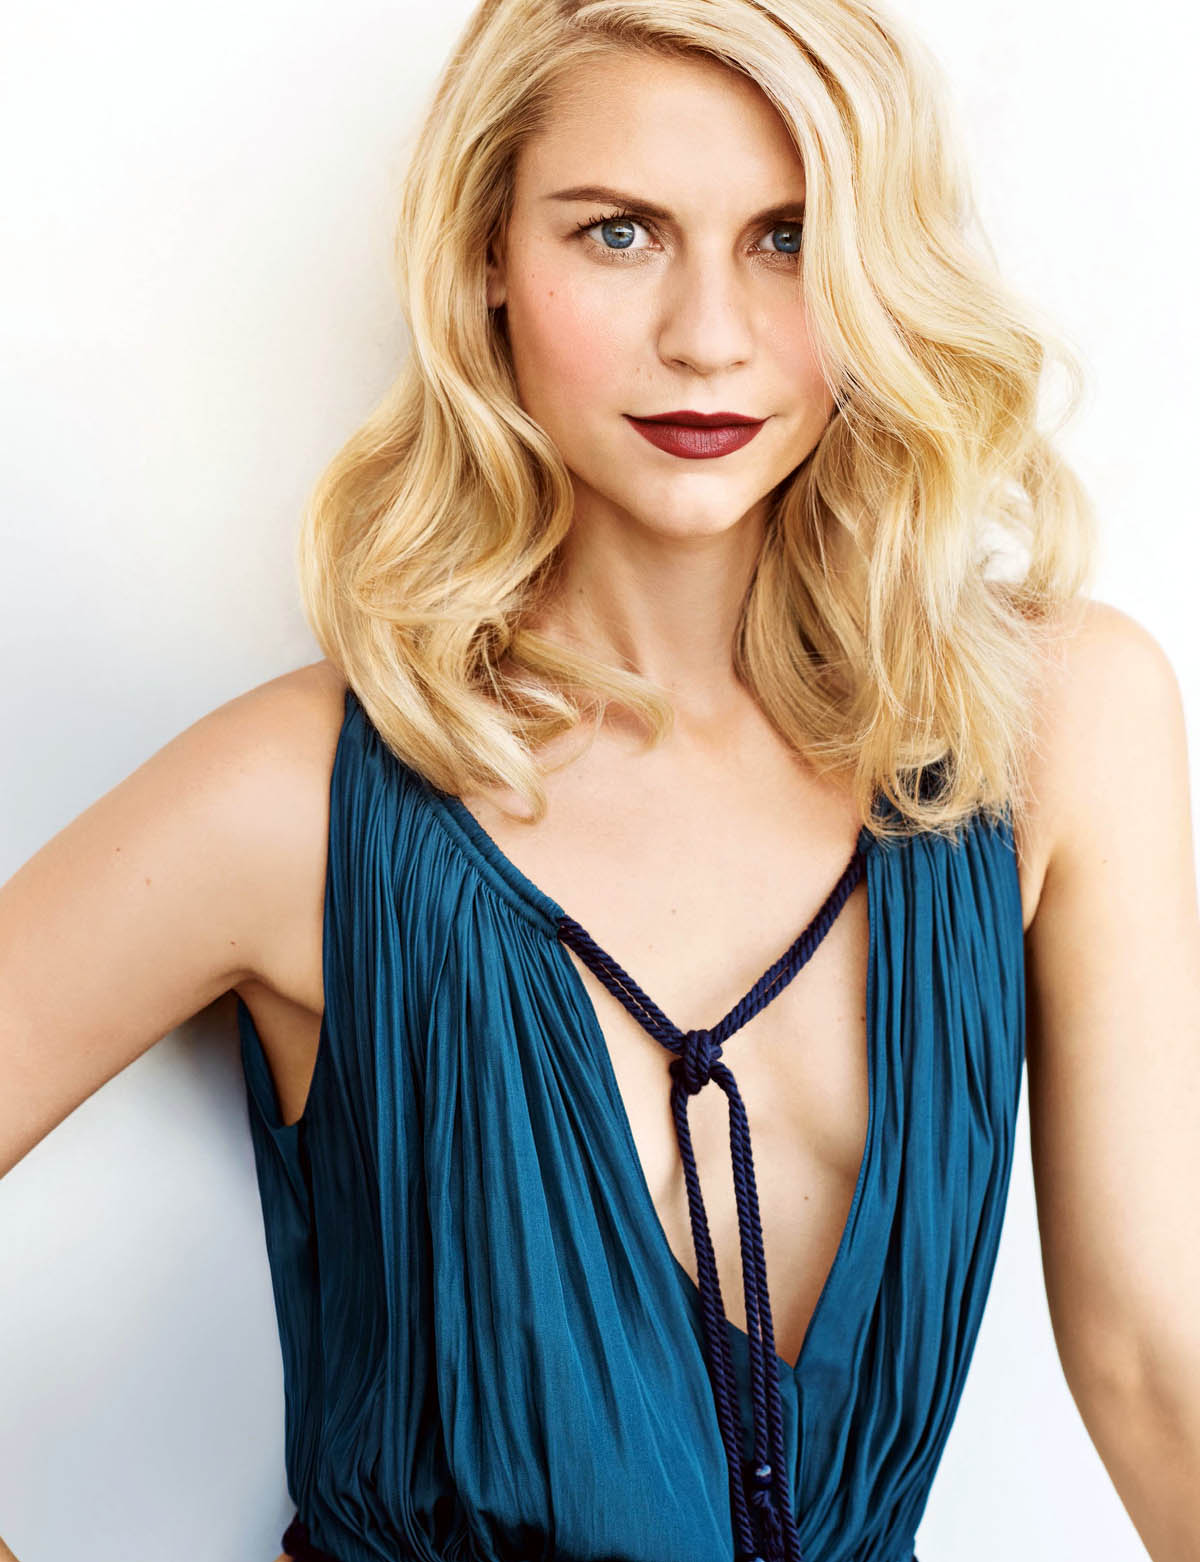 Cleavage Claire Danes nudes (48 foto and video), Topless, Is a cute, Twitter, braless 2019